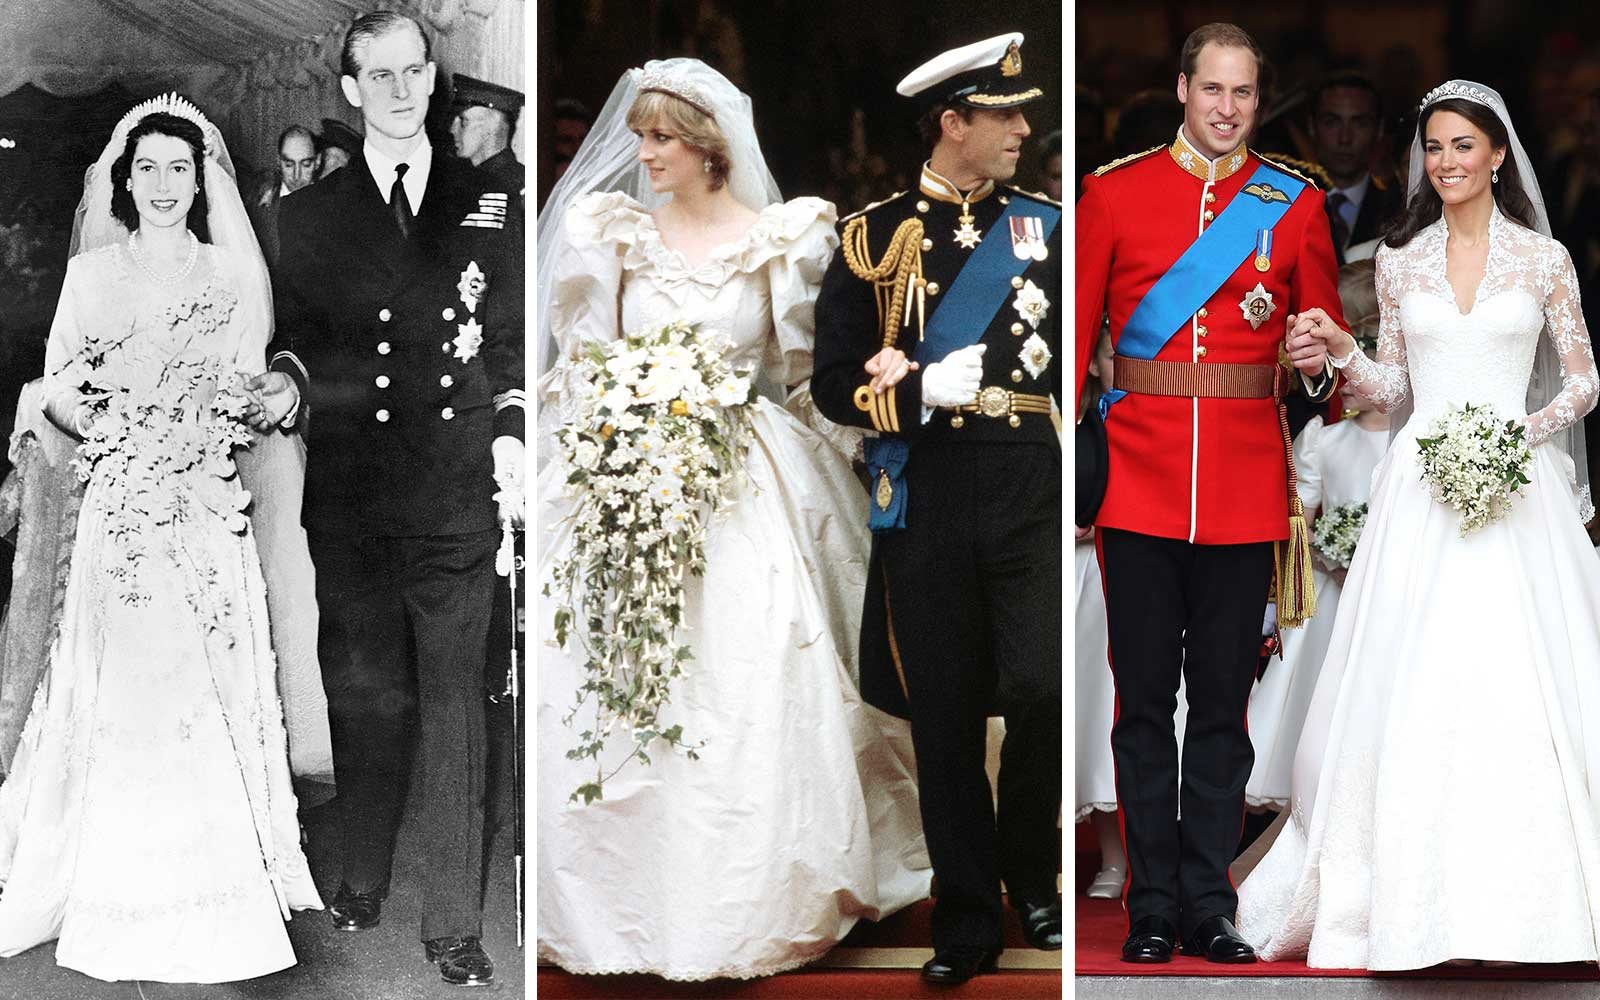 The weddings of Queen Elizabeth to Prince Philip, Prince Charles and Diana, and Will and Kate